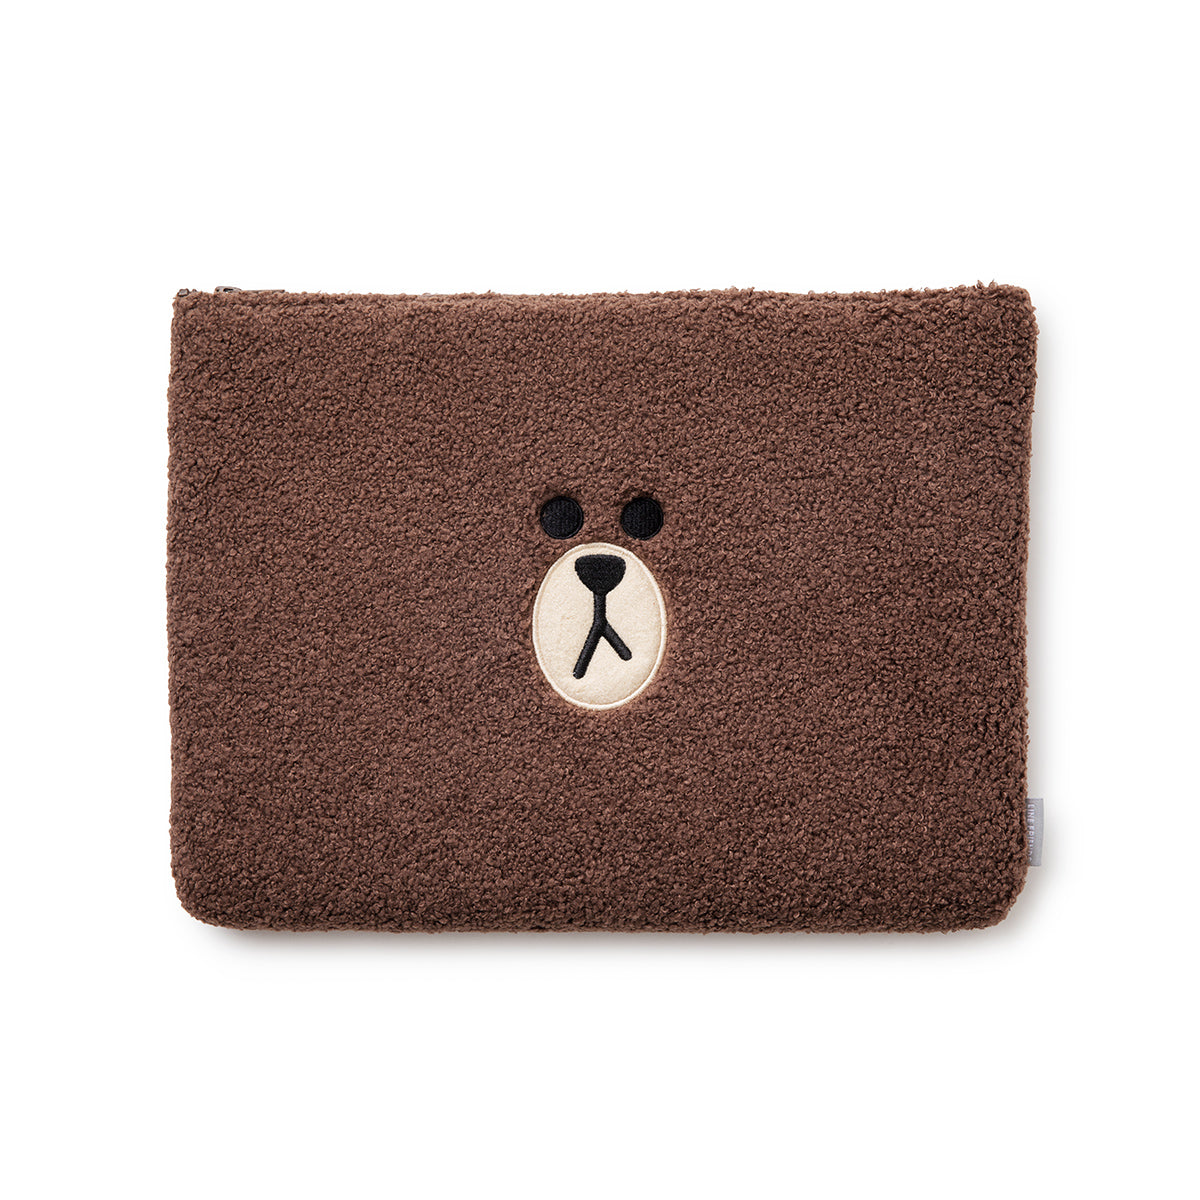 BROWN Ppogeul Laptop Sleeve 13""